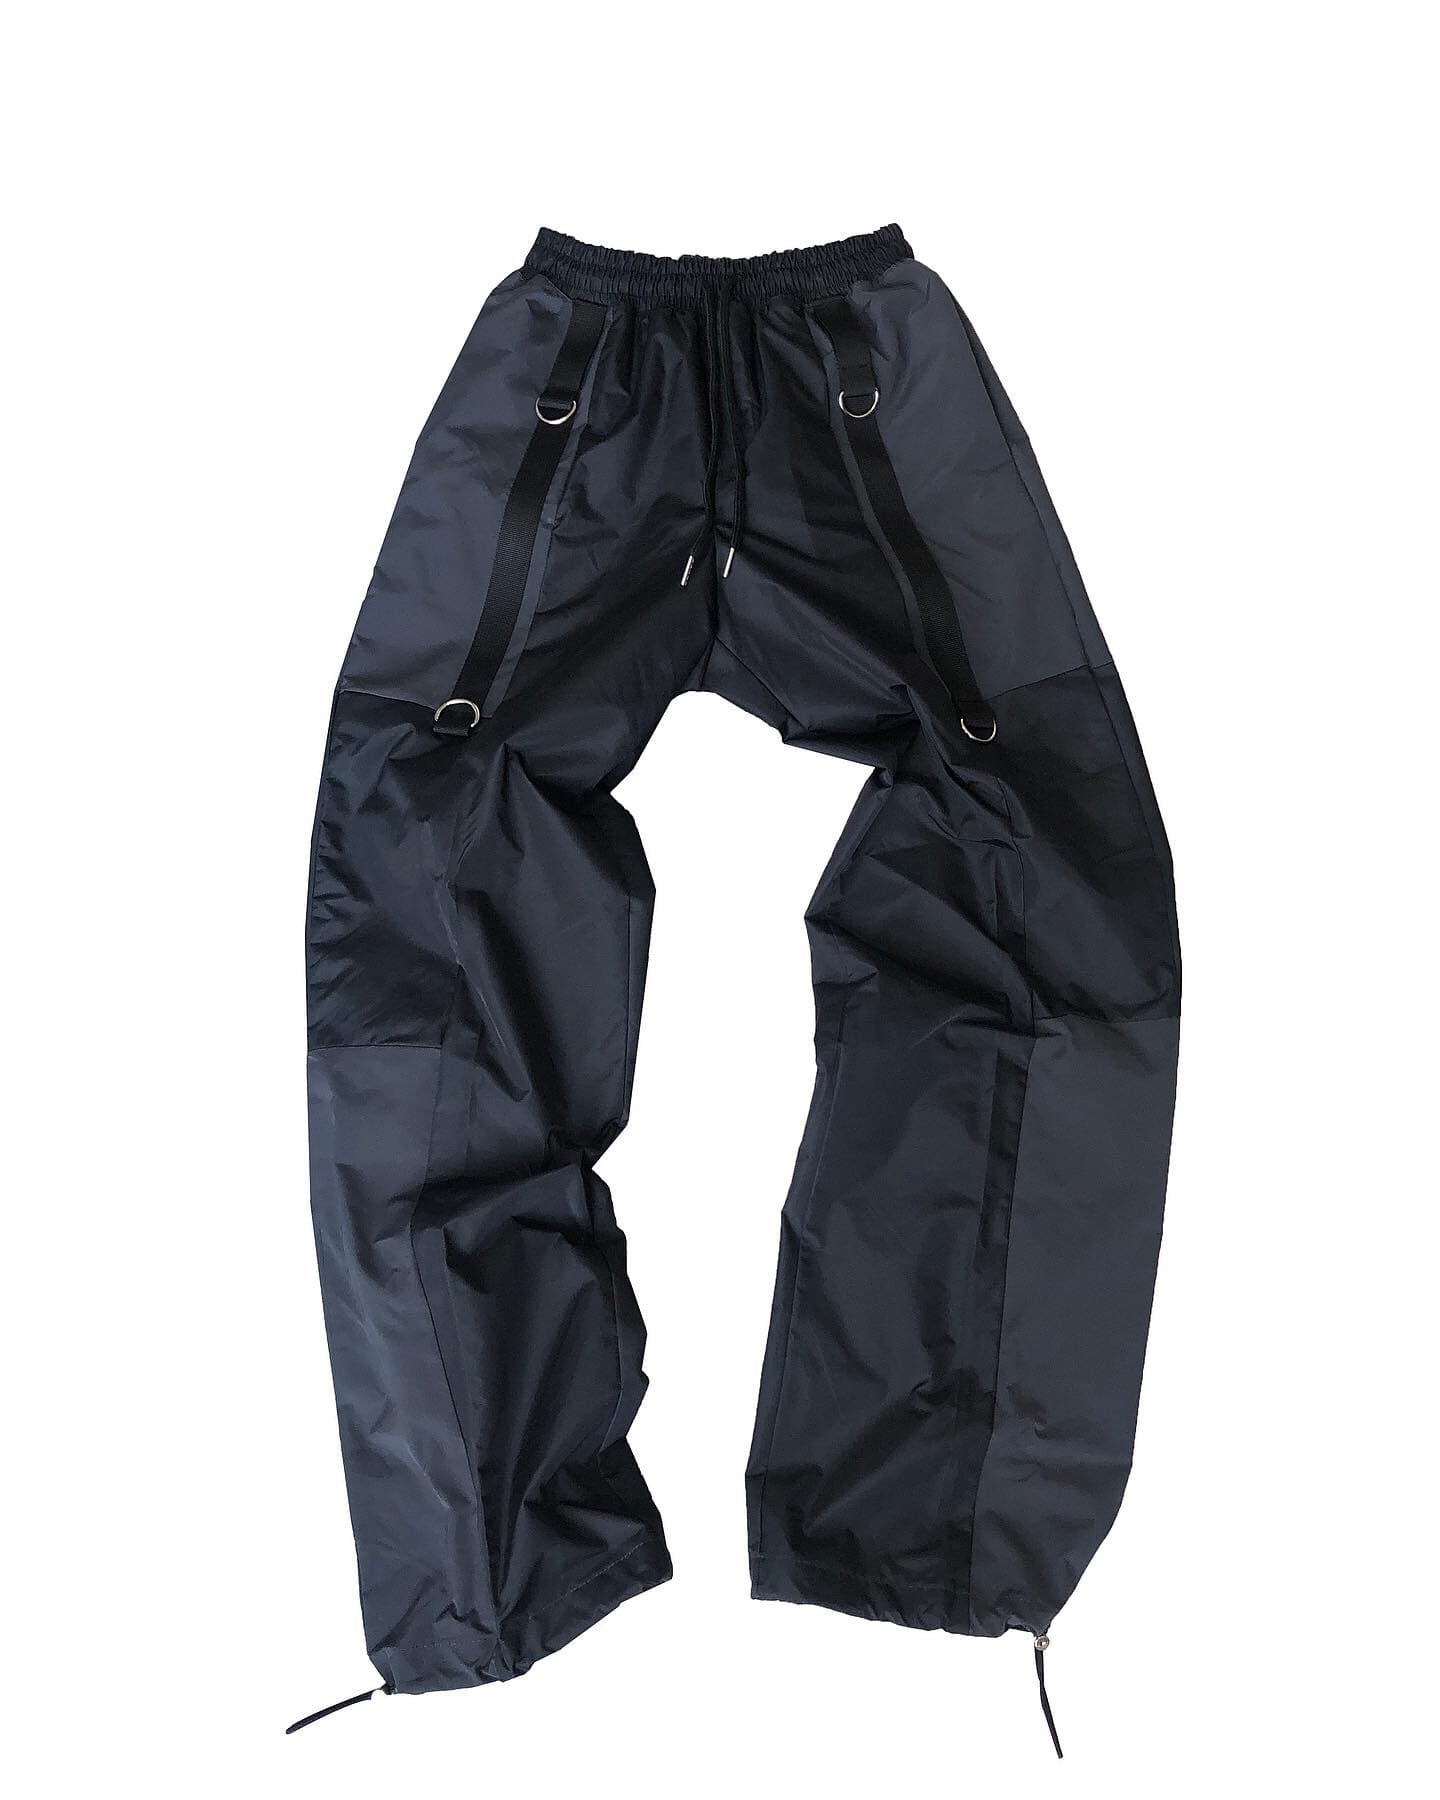 deepgray Worker Pants 2